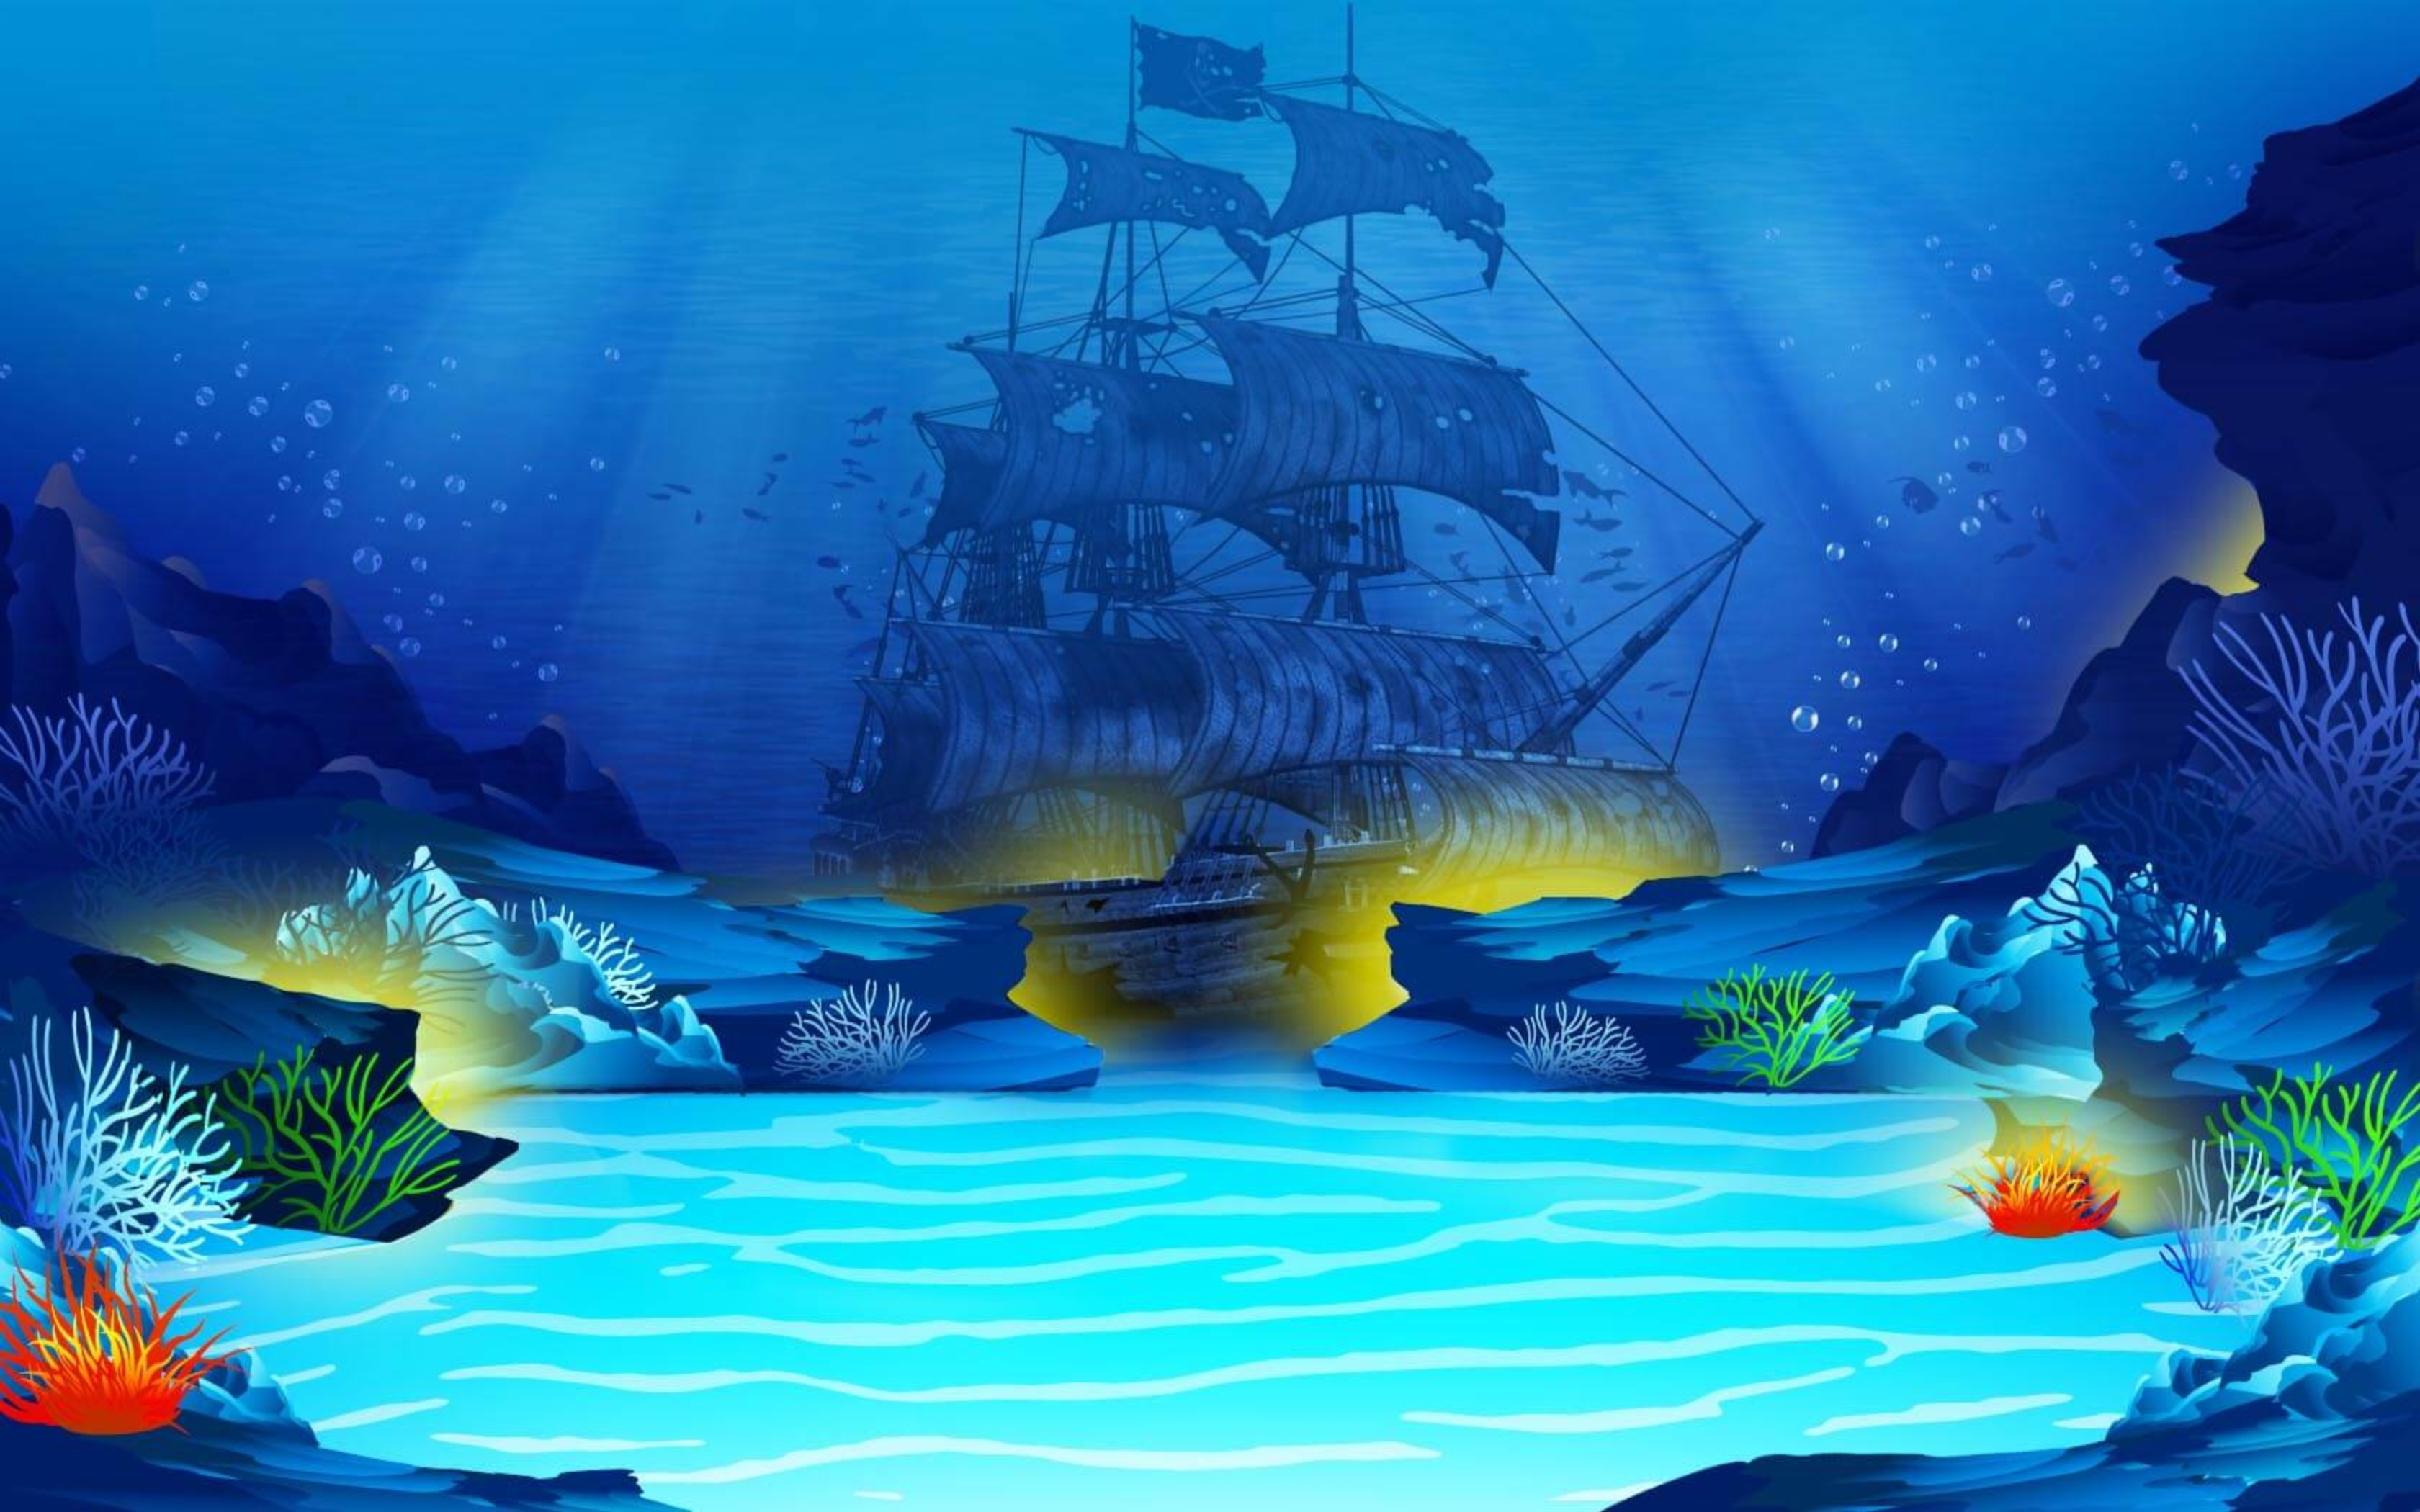 The Underwater Riches Online Slot Demo Game by FBM